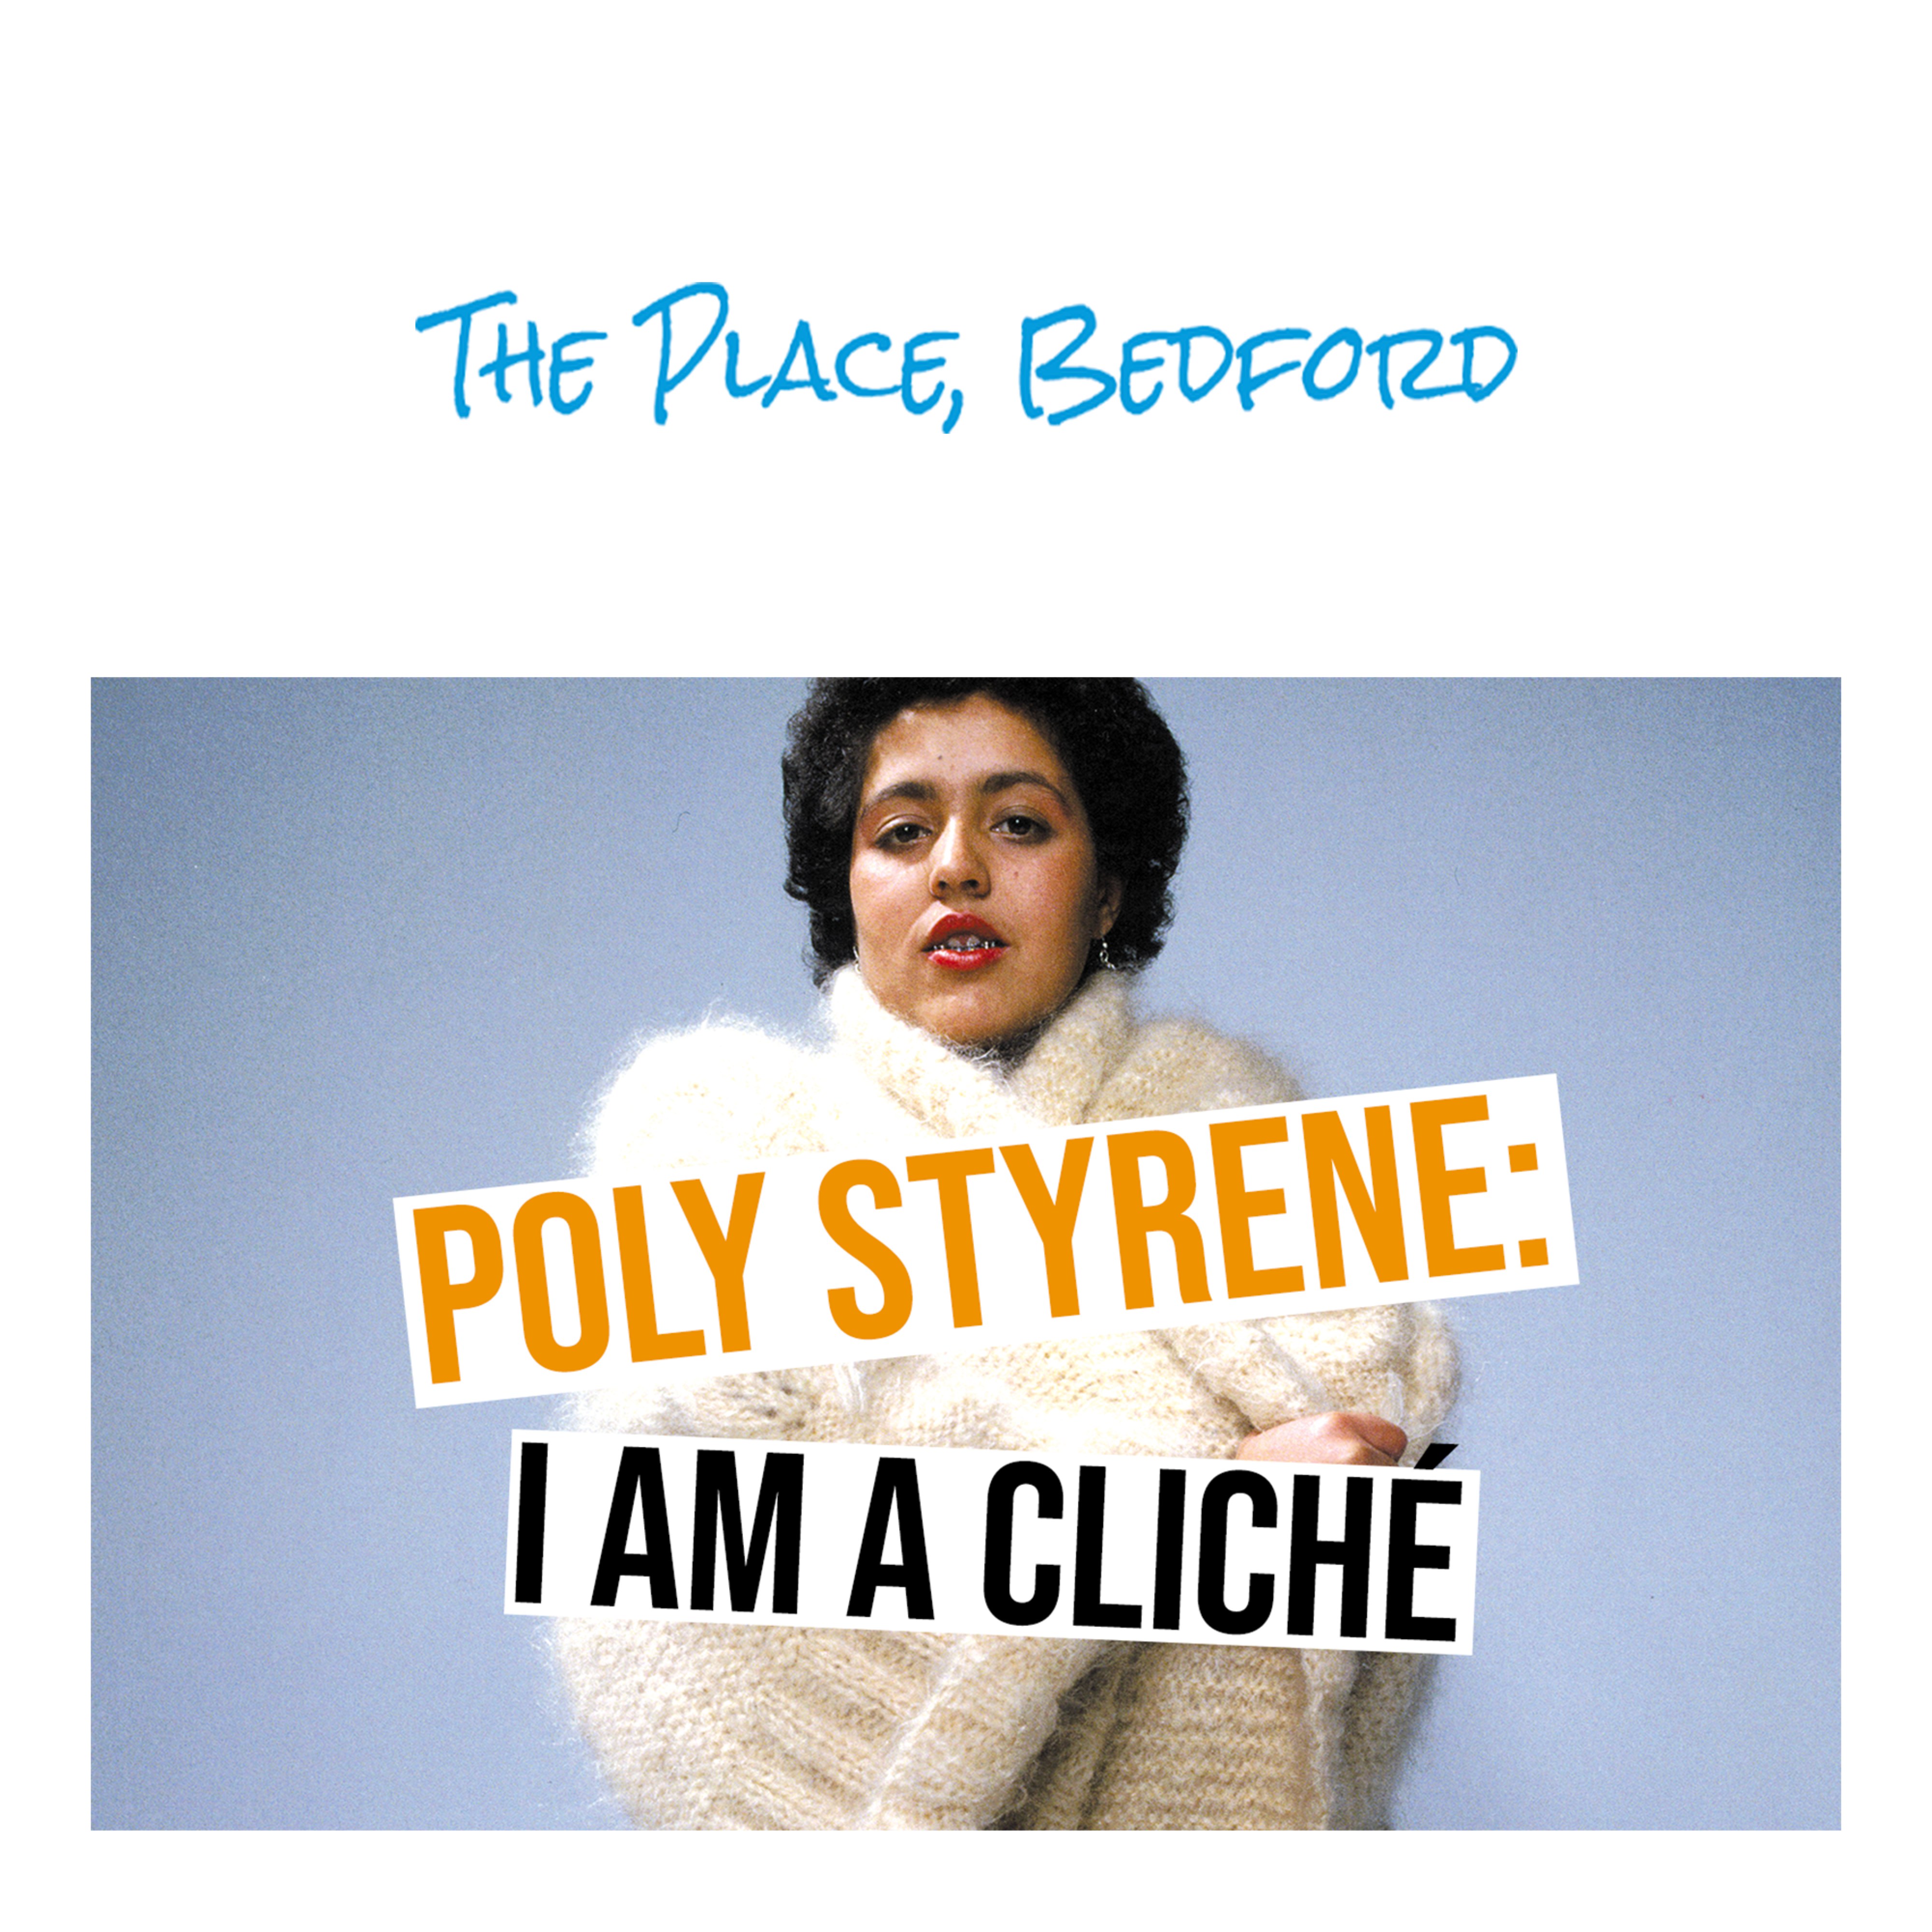 Poly Styrene: I Am a Cliché at The Place, Bedford